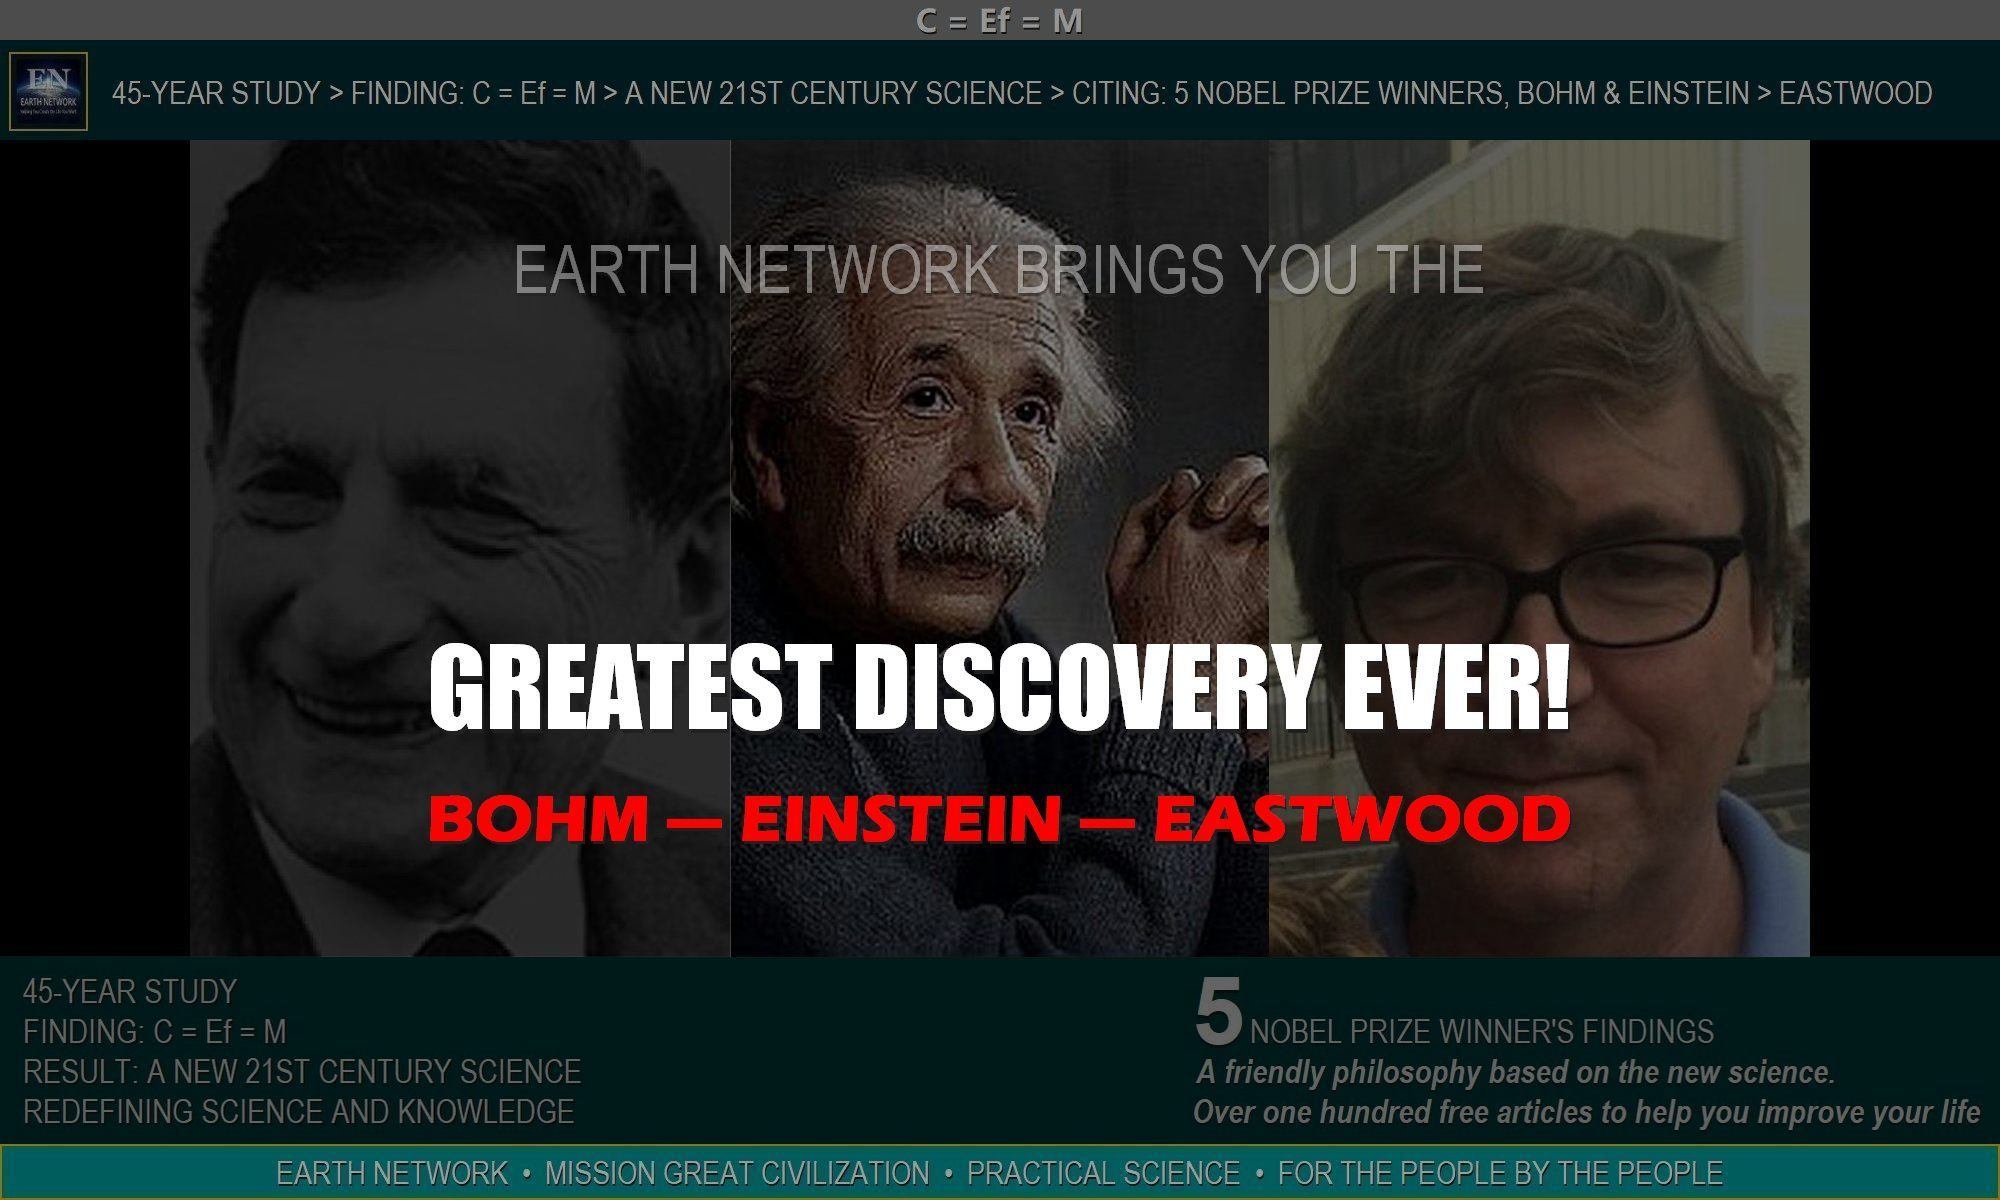 THE GREATEST NEWS STORY & SCIENTIFIC DISCOVERY EVER! EINSTEIN'S COLLEAGUE'S NEWS OF THE DAY, WEEK, YEAR & CENTURY! JOURNEY OUT OF THE ILLUSION